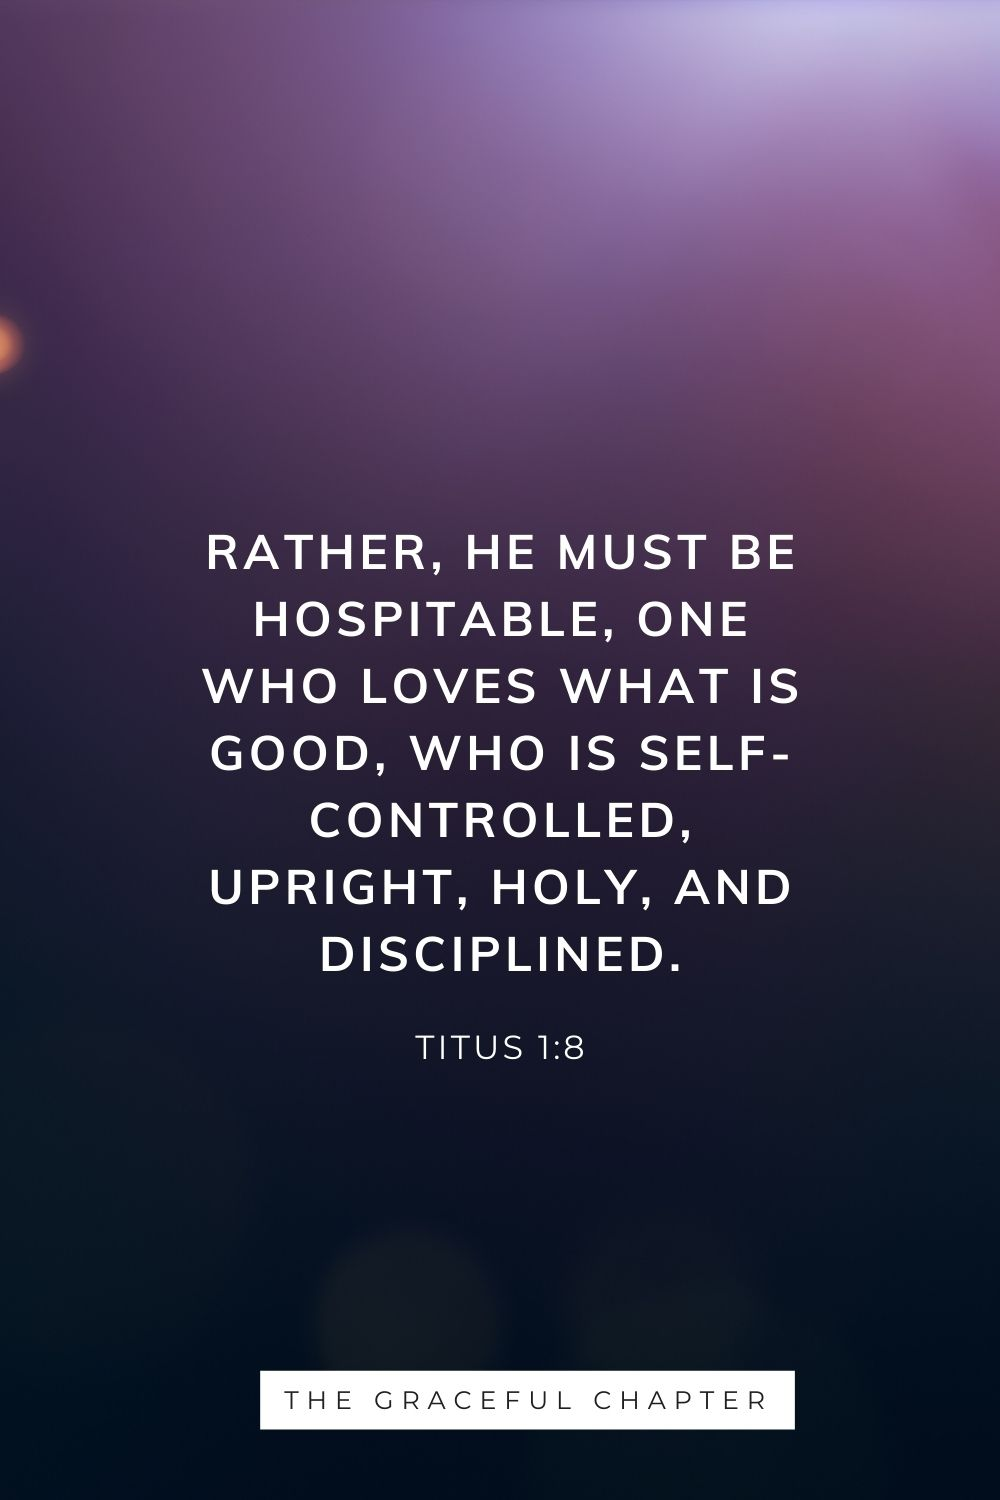 Rather, he must be hospitable, one who loves what is good, who is self-controlled, upright, holy, and disciplined. Titus 1:8